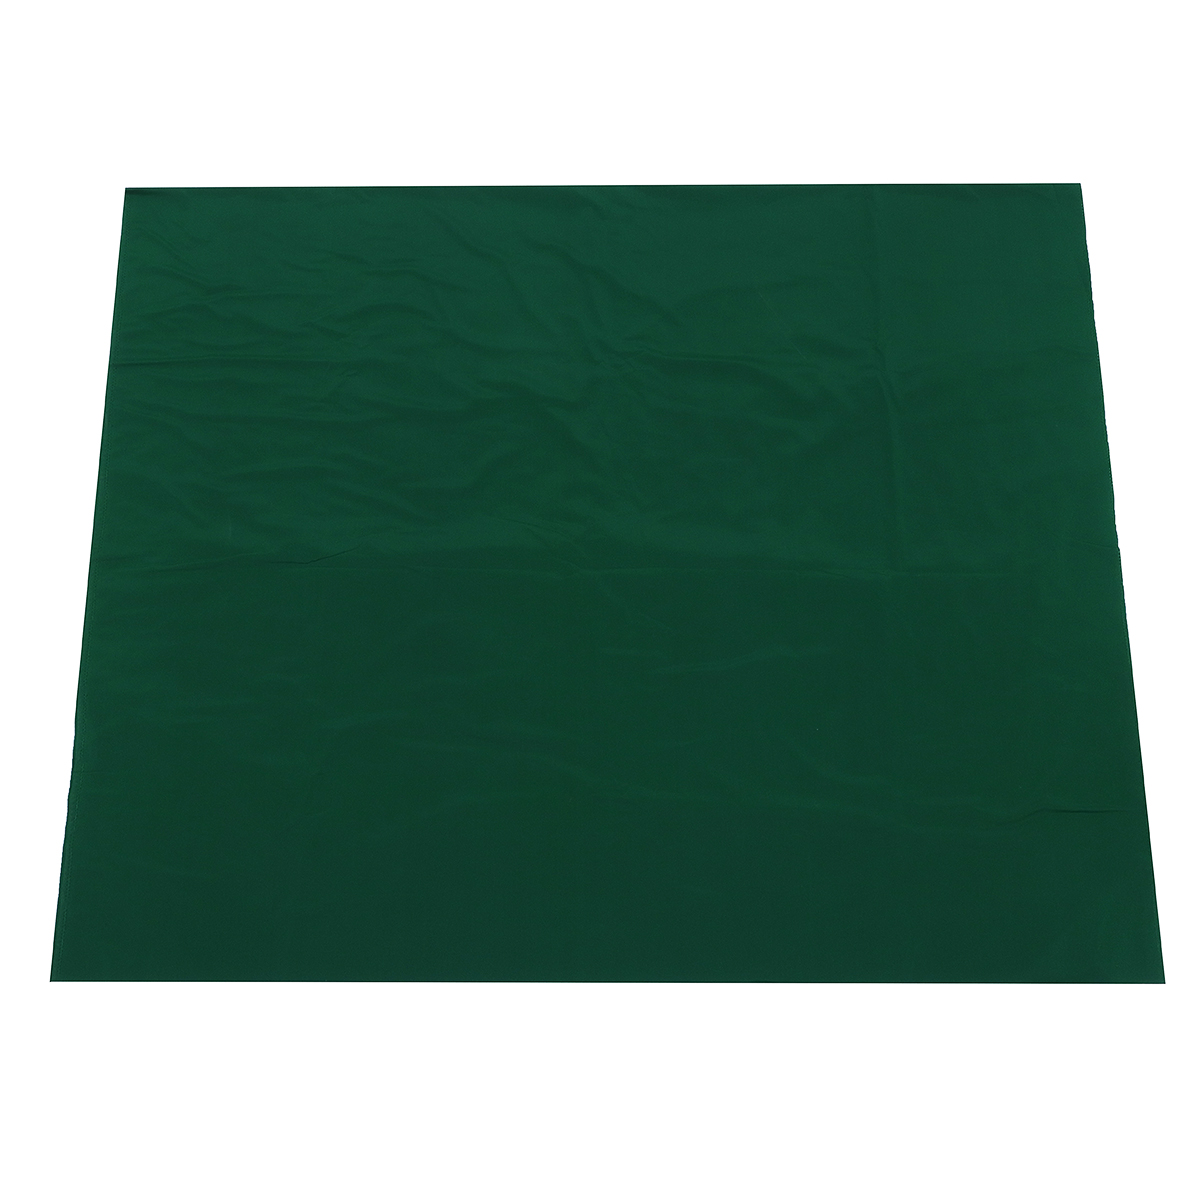 2.5x1.45m Single-sided Billiards Pool Snooker Table Cover Cloth For 7/8 Inch Table